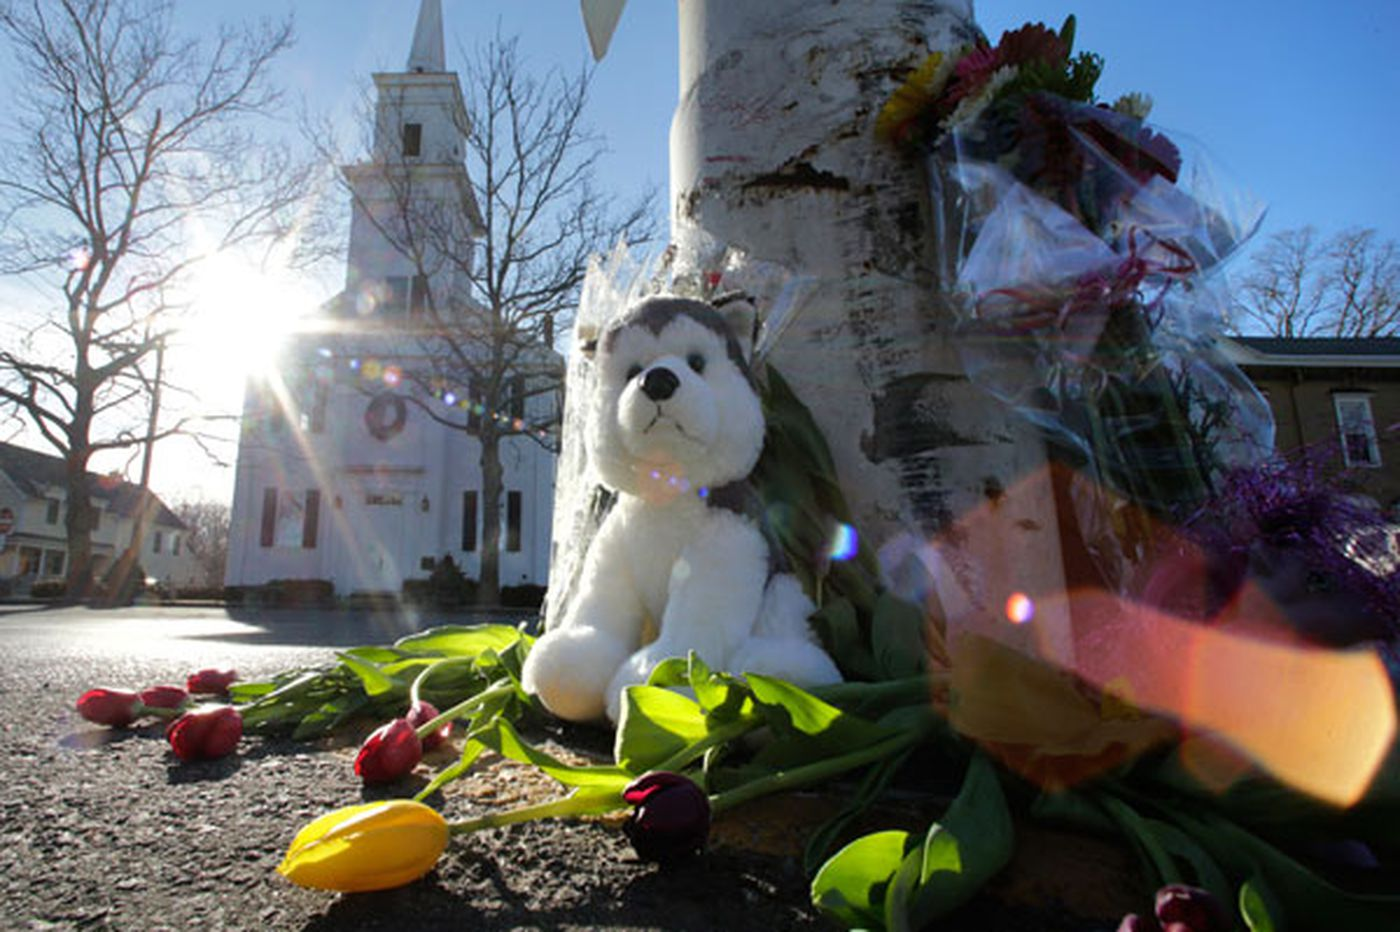 Ways to help Sandy Hook victims